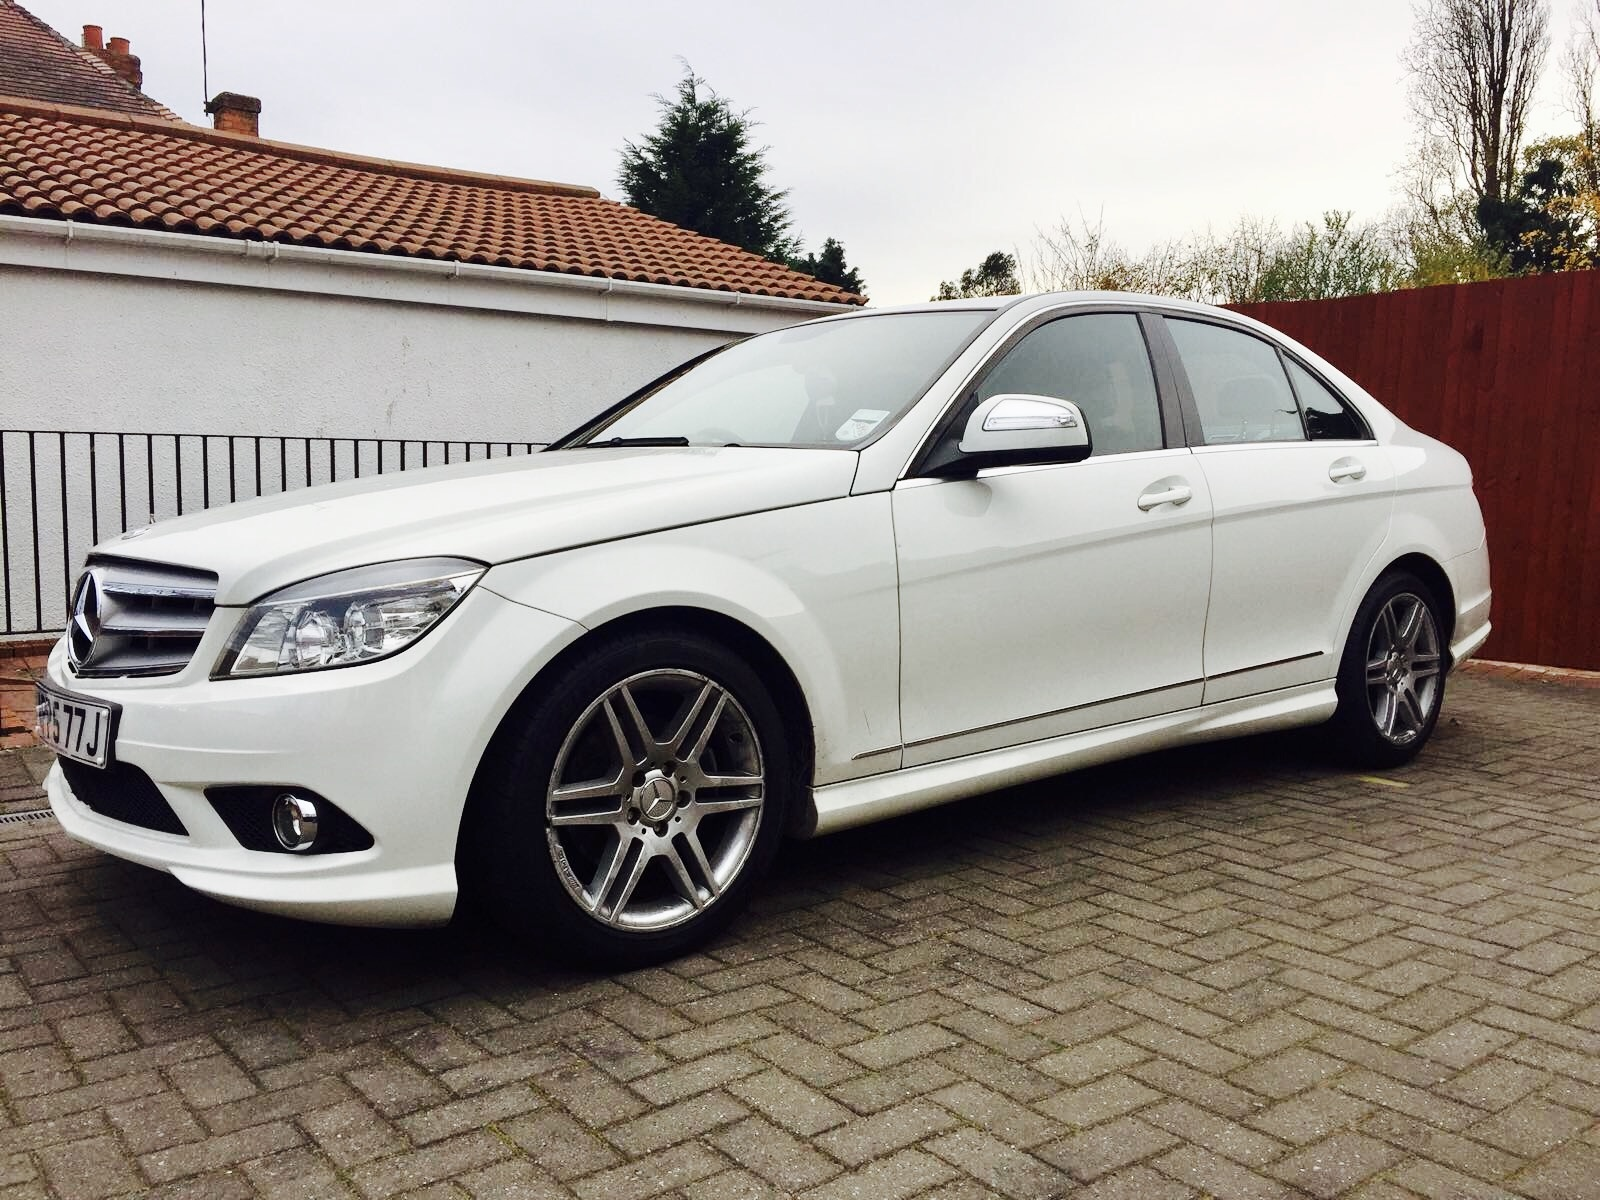 Mercedes benz c class questions sell my car cargurus for Sell my mercedes benz